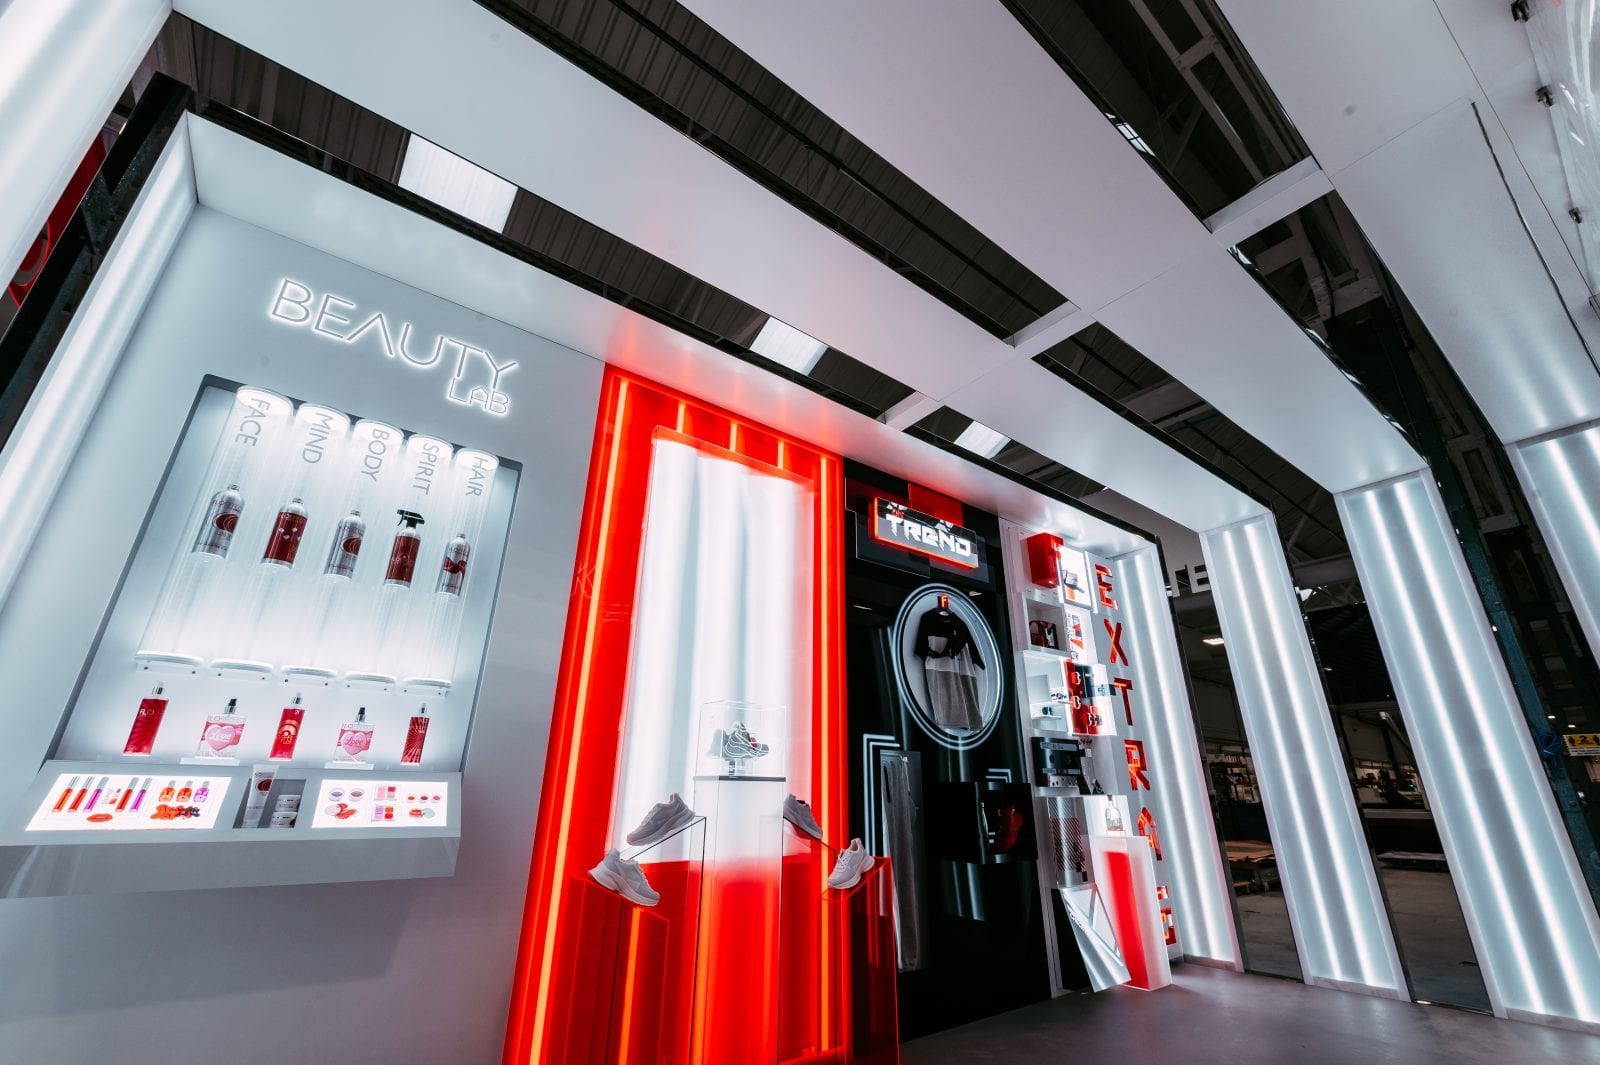 Stockport acrylics company launches immersive popup concept store, The Manc